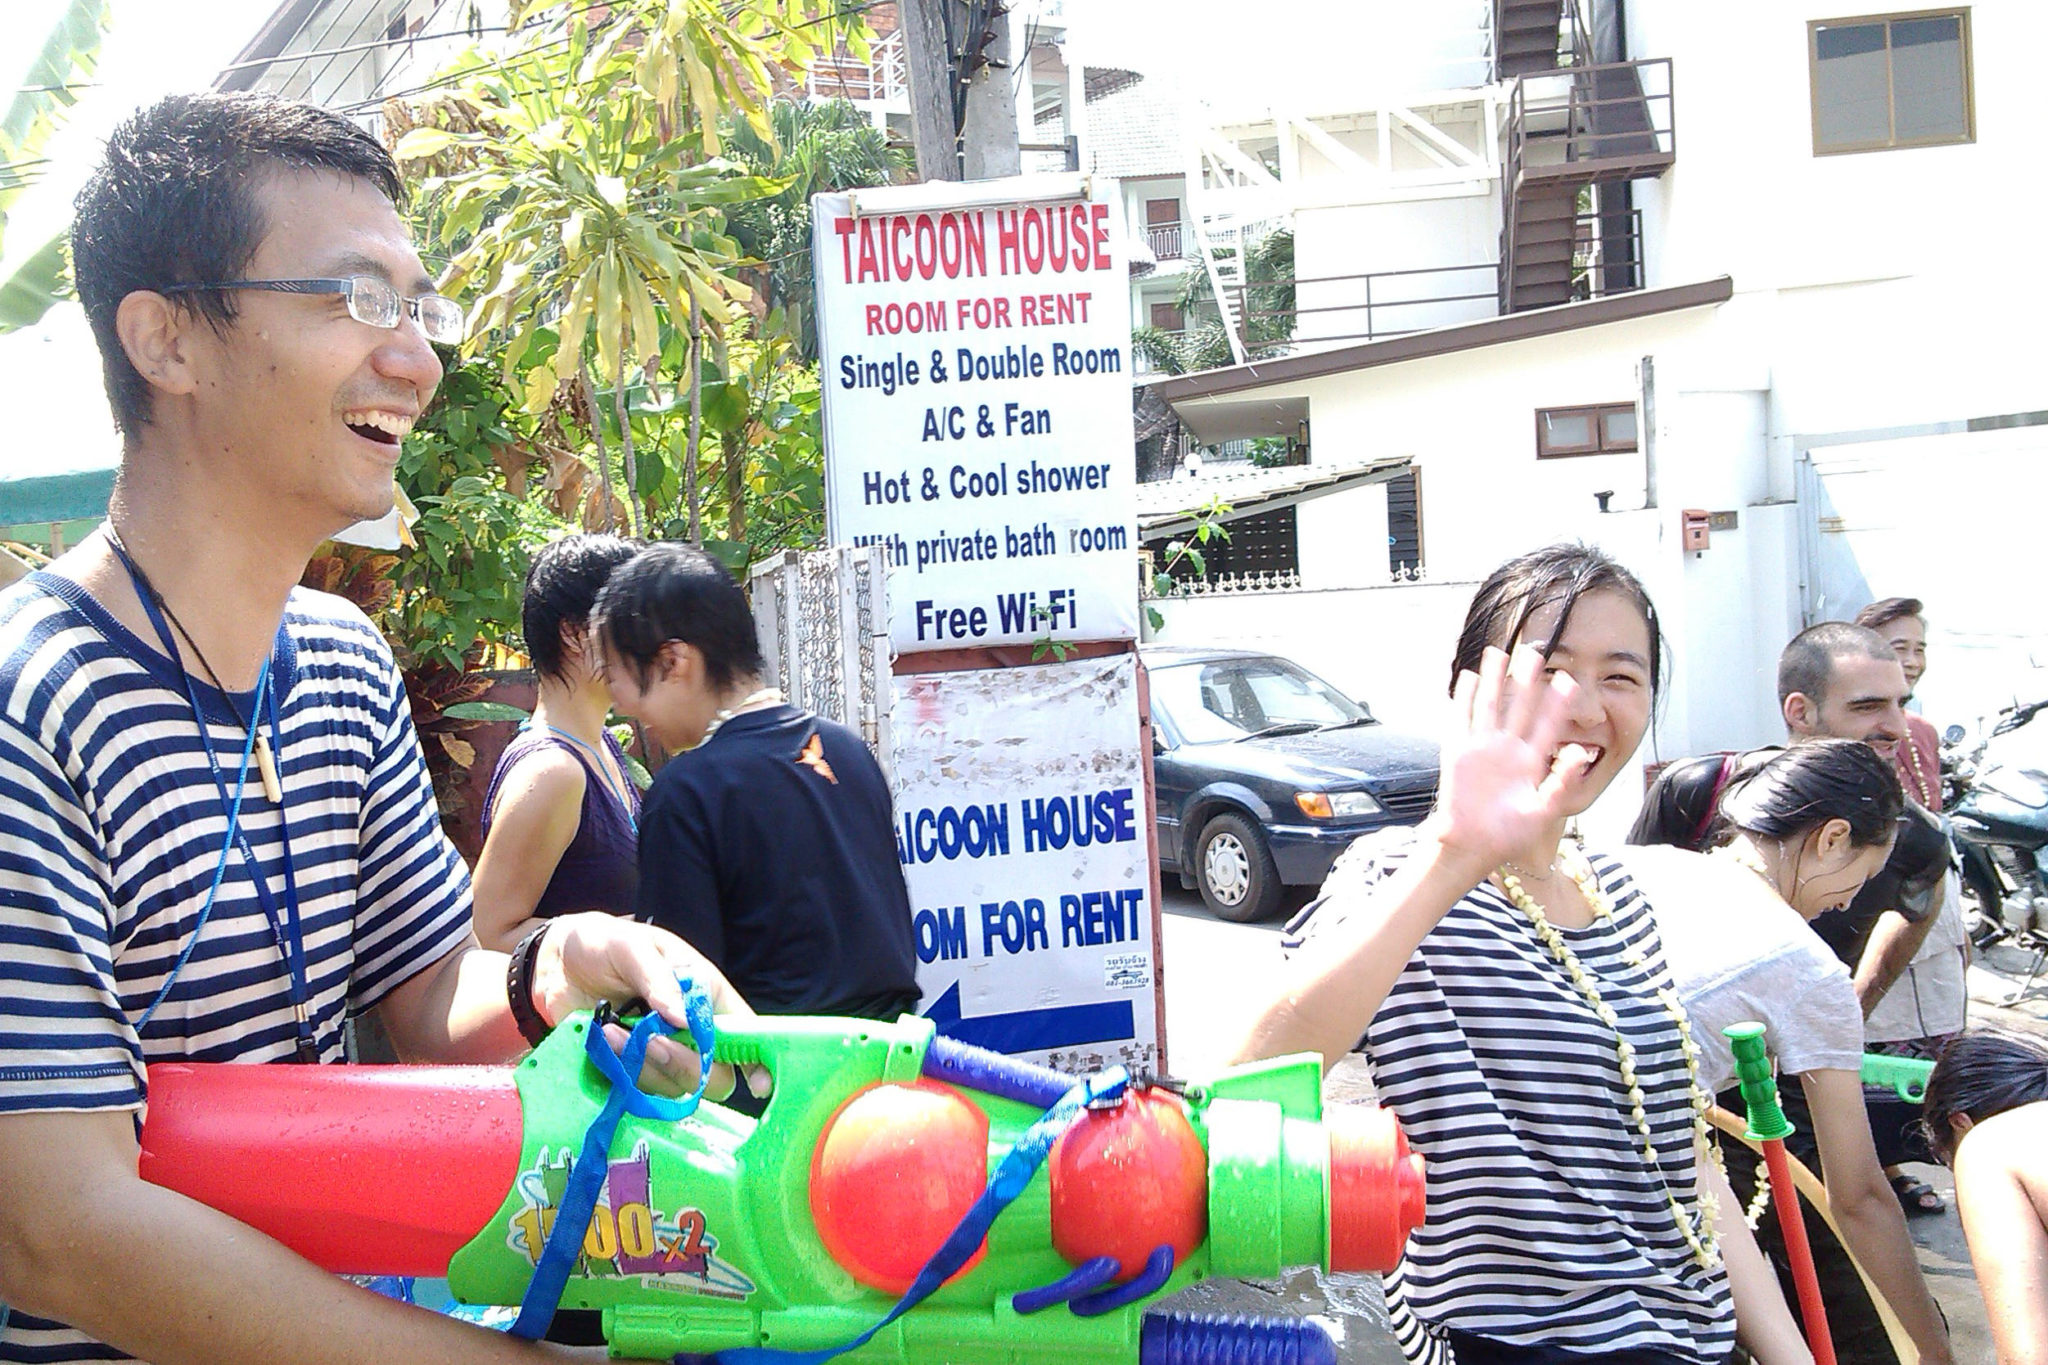 Songkran in Chiang Mai, Outside Taicoon House - Happymind Travels